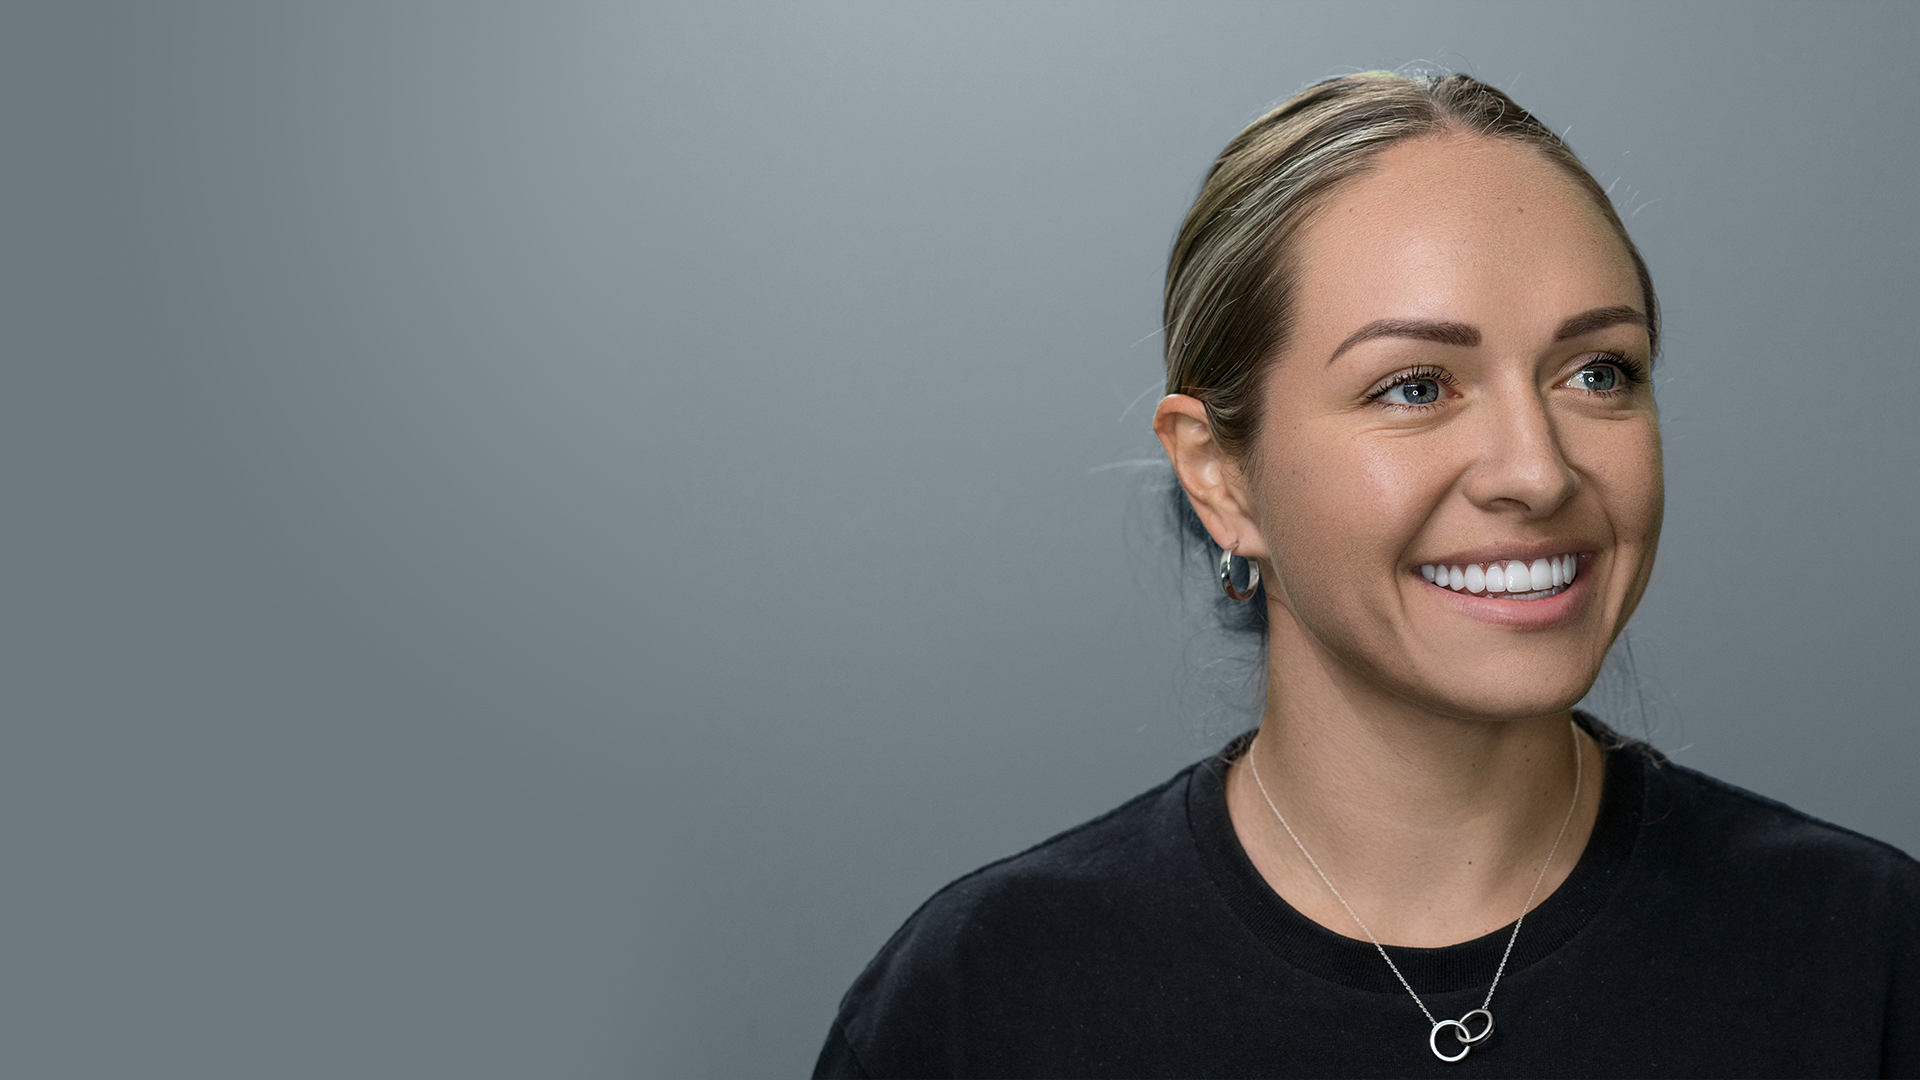 Kyah Simon, Australian soccer player, with porcelain veneers by Dr Dee.